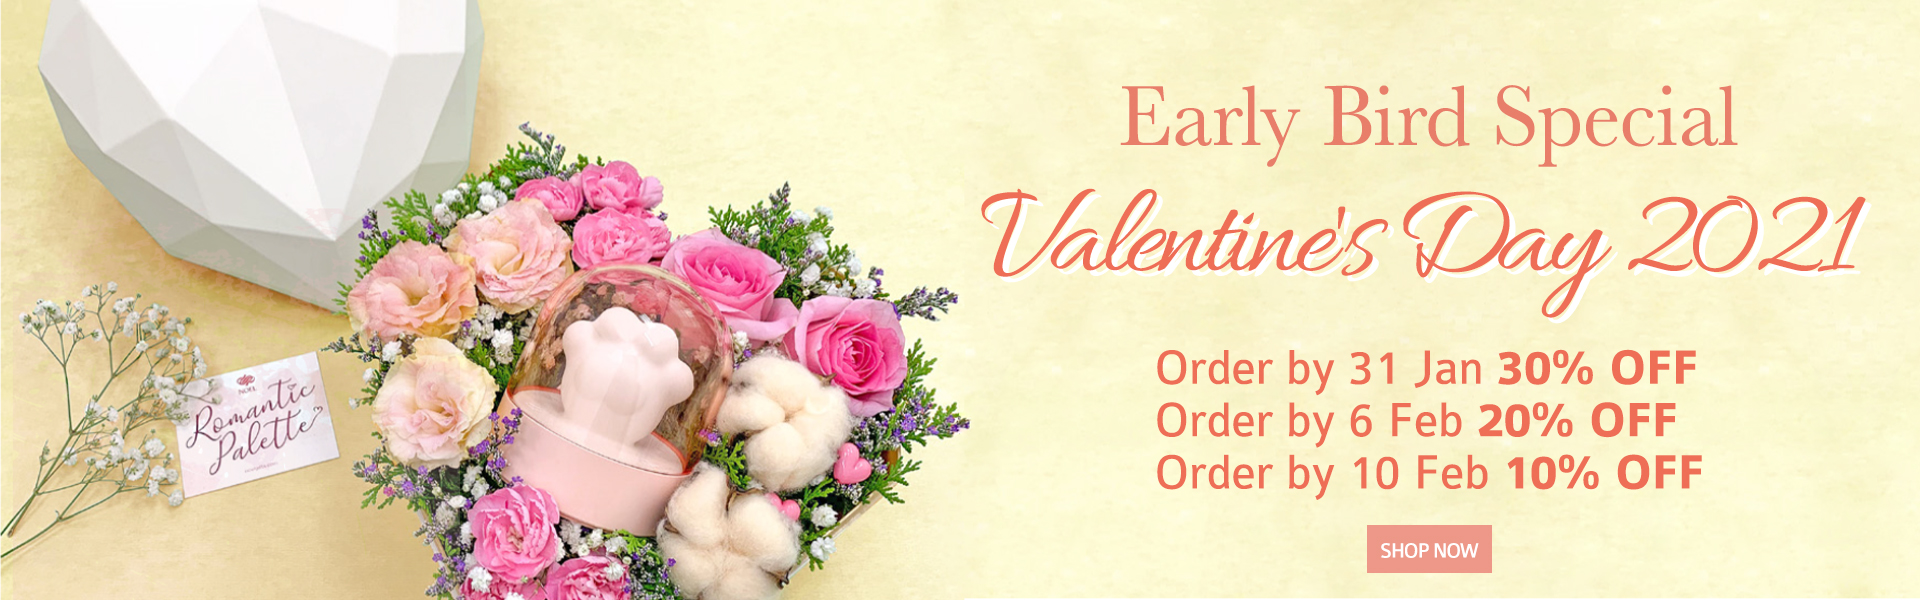 Valentines Day EBB Sale